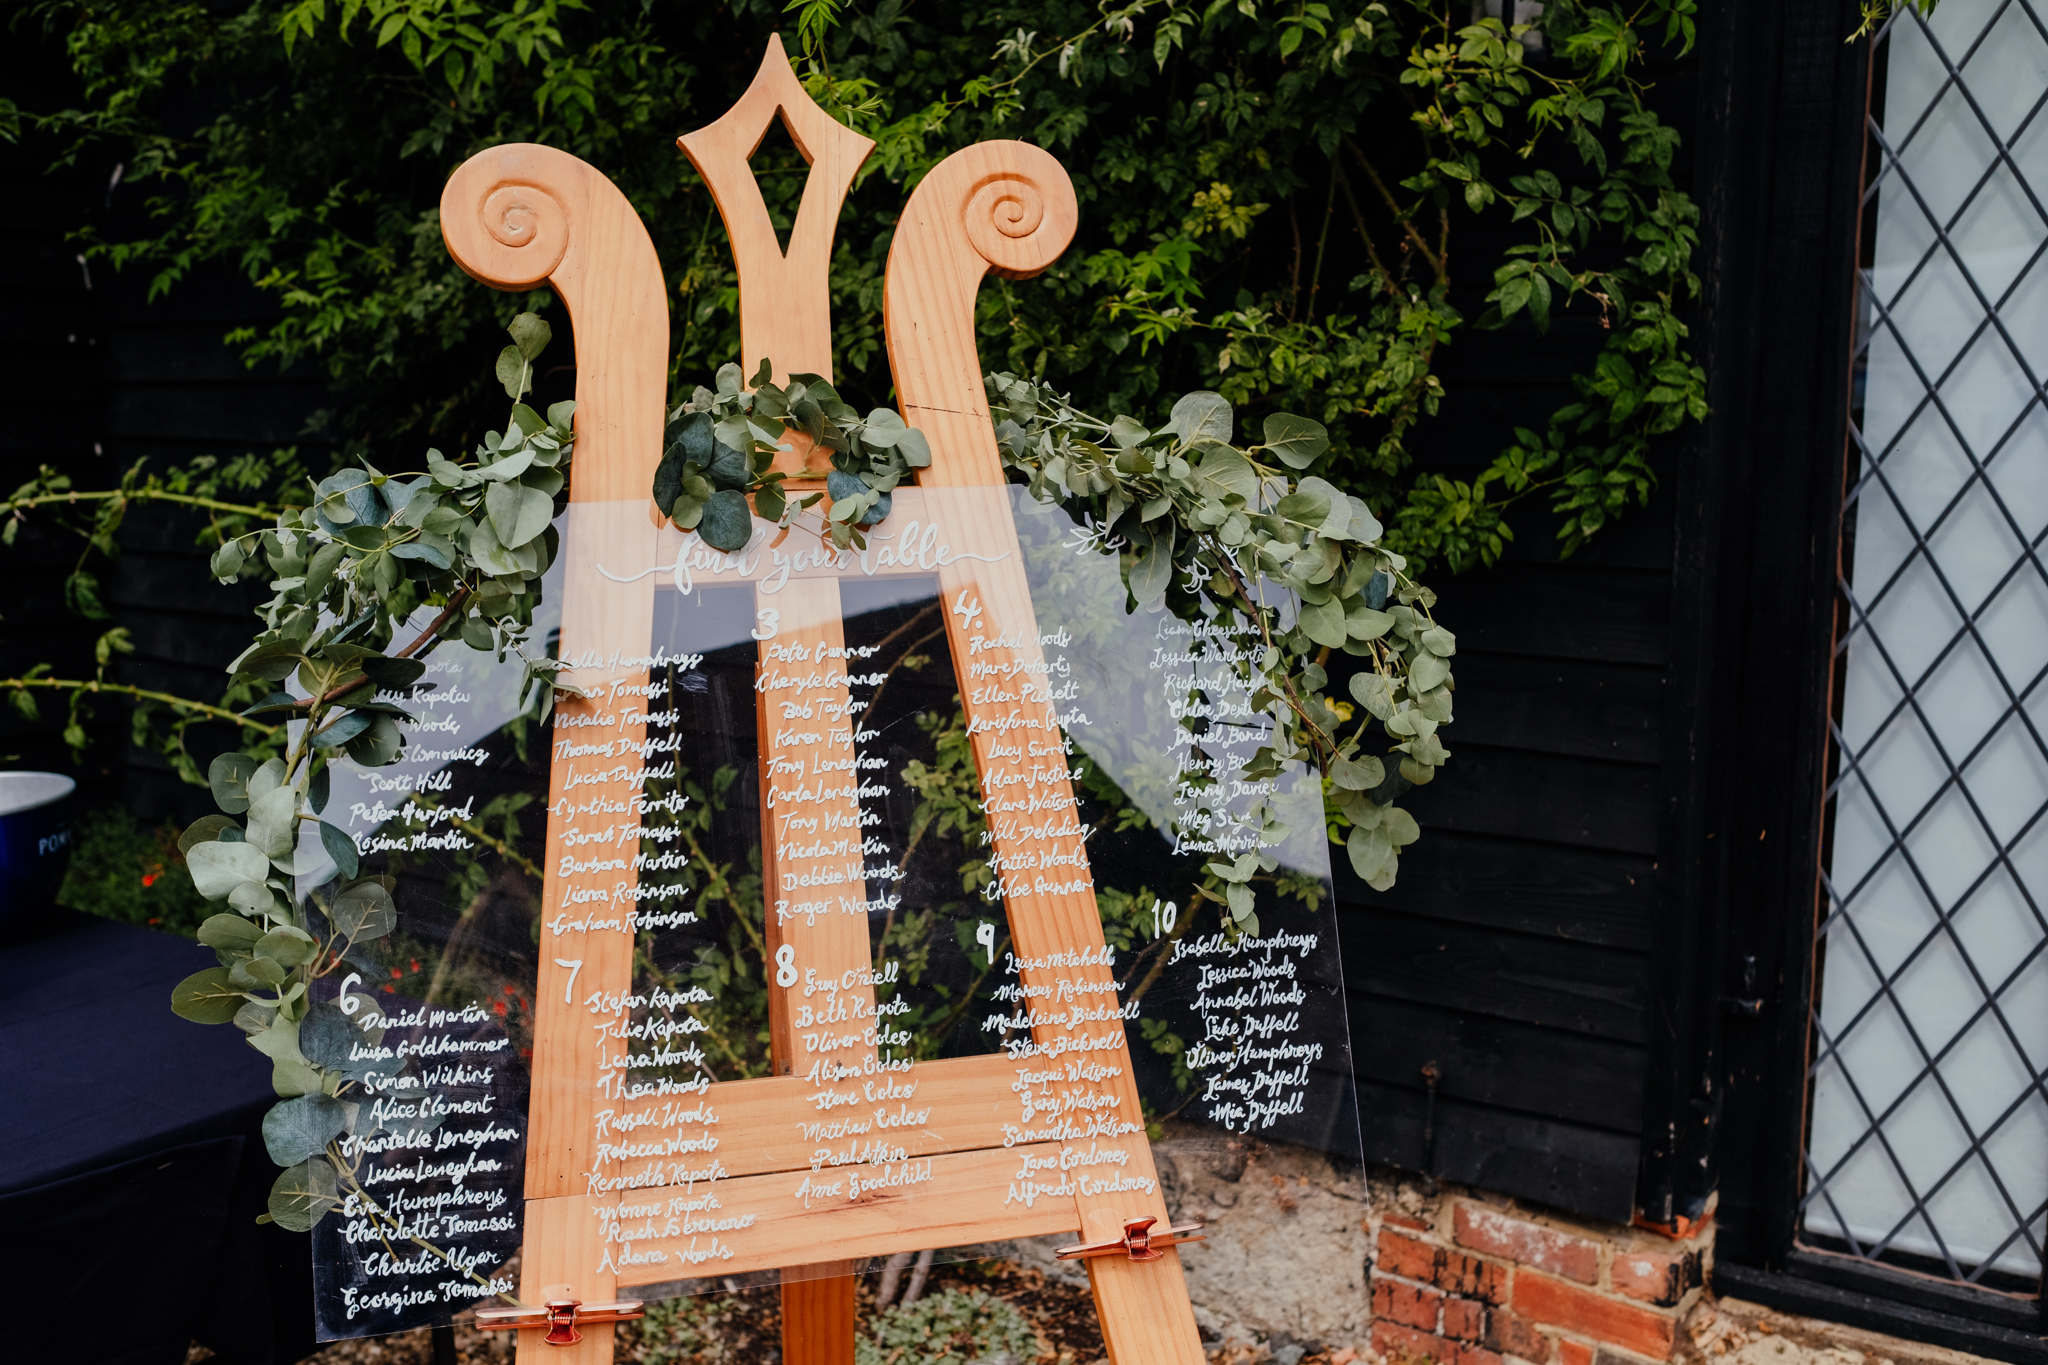 Rumbolds Farm Wedding table plan surrounded by eucalyptus